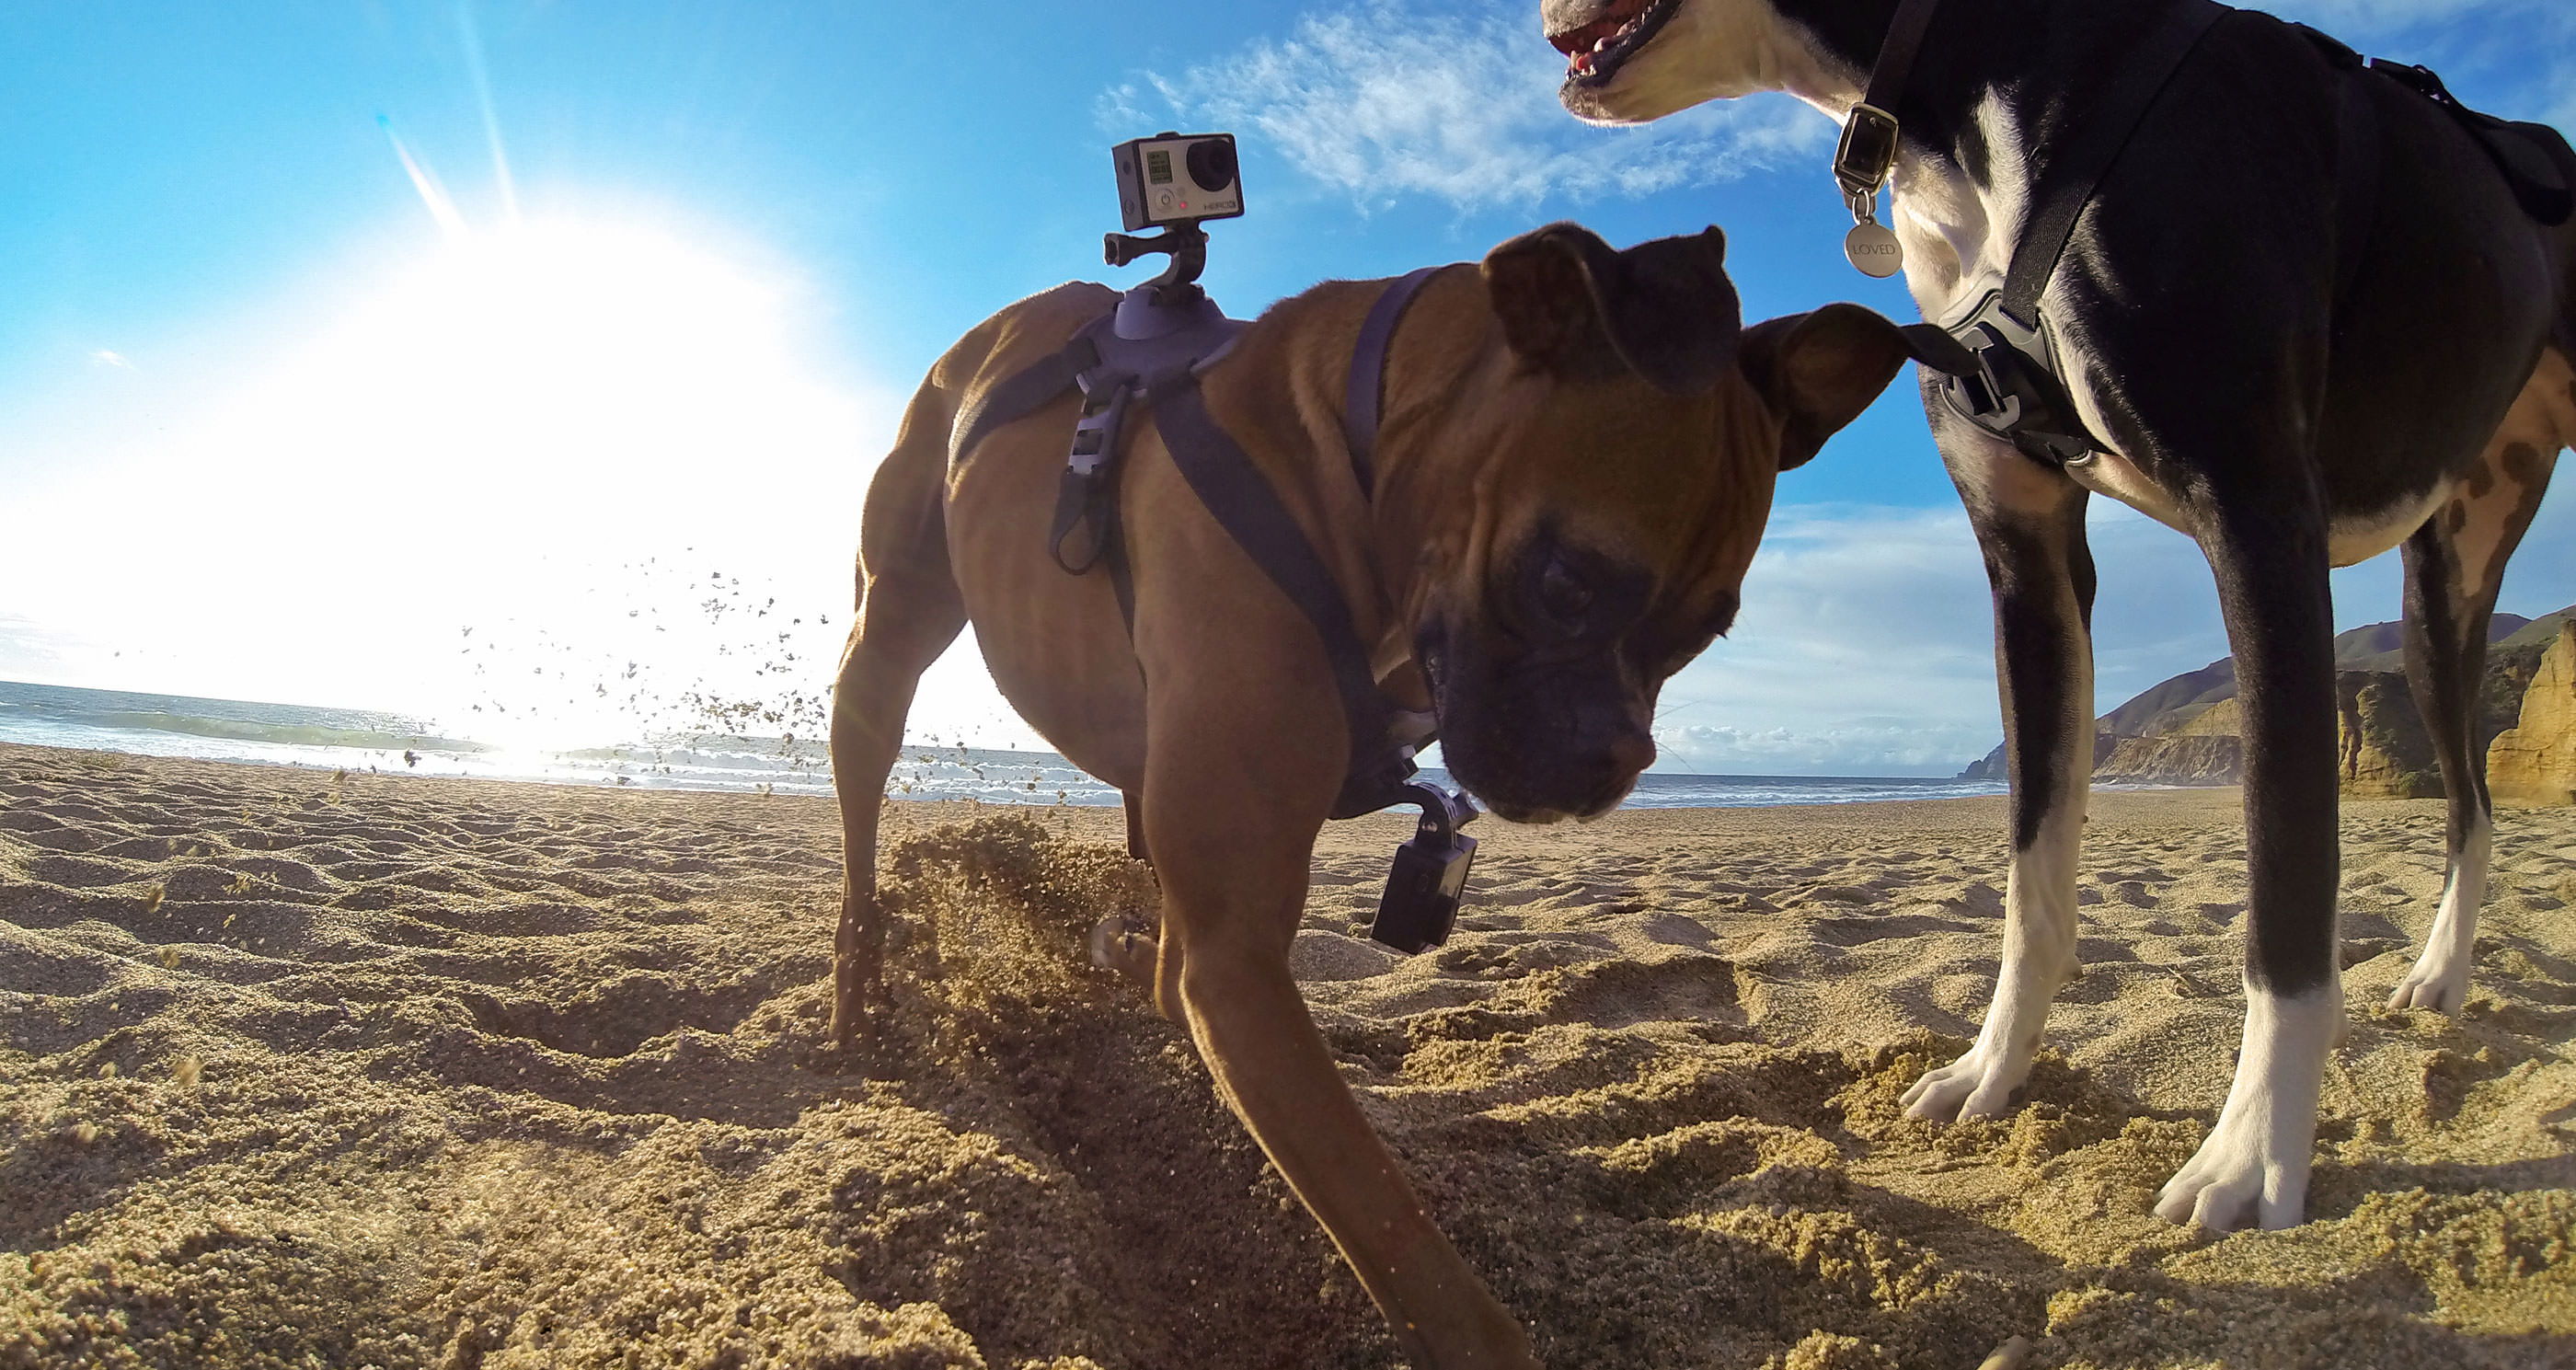 GoPro to cut another 270 jobs, nearly a fifth of its workforce